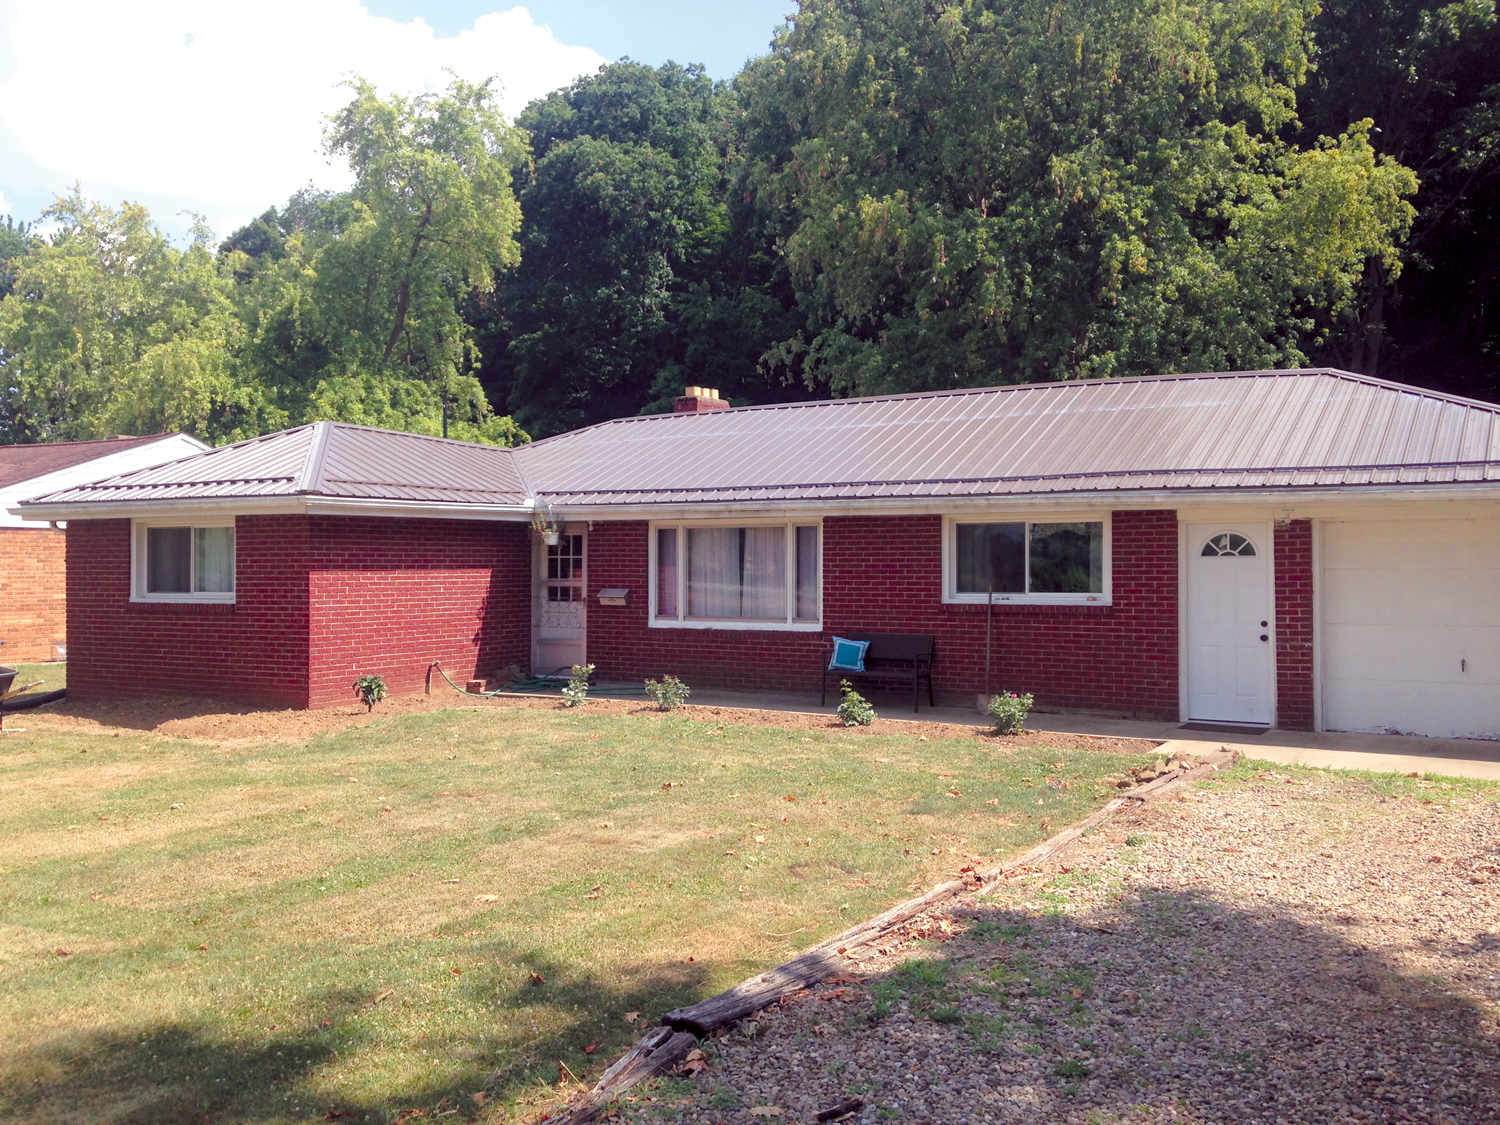 Residential Metal Roofing Project